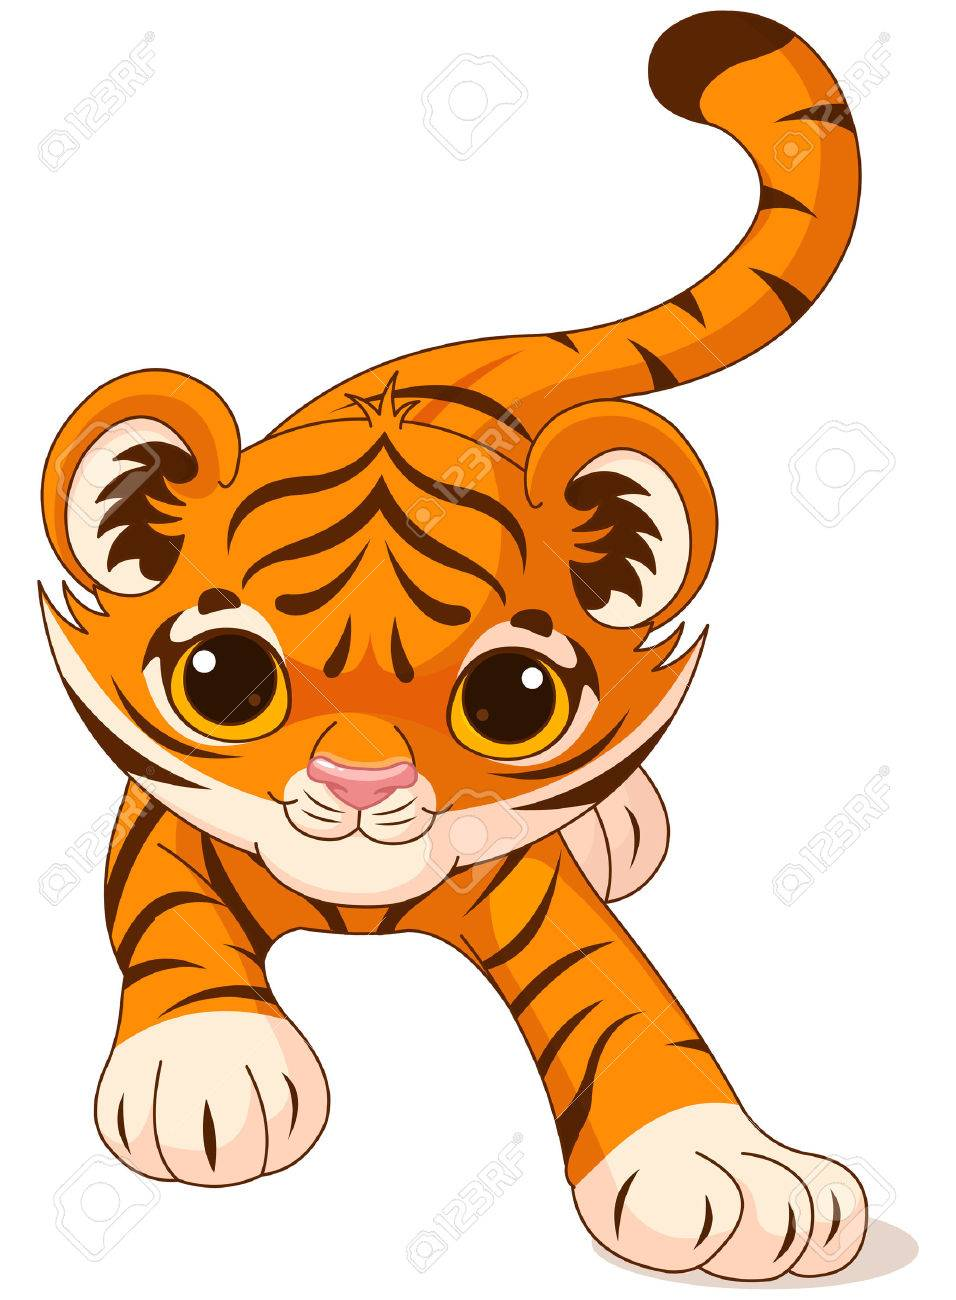 illustration of crouching cute baby tiger royalty free cliparts rh 123rf com Cute Tiger Clip Art cute baby tiger clipart